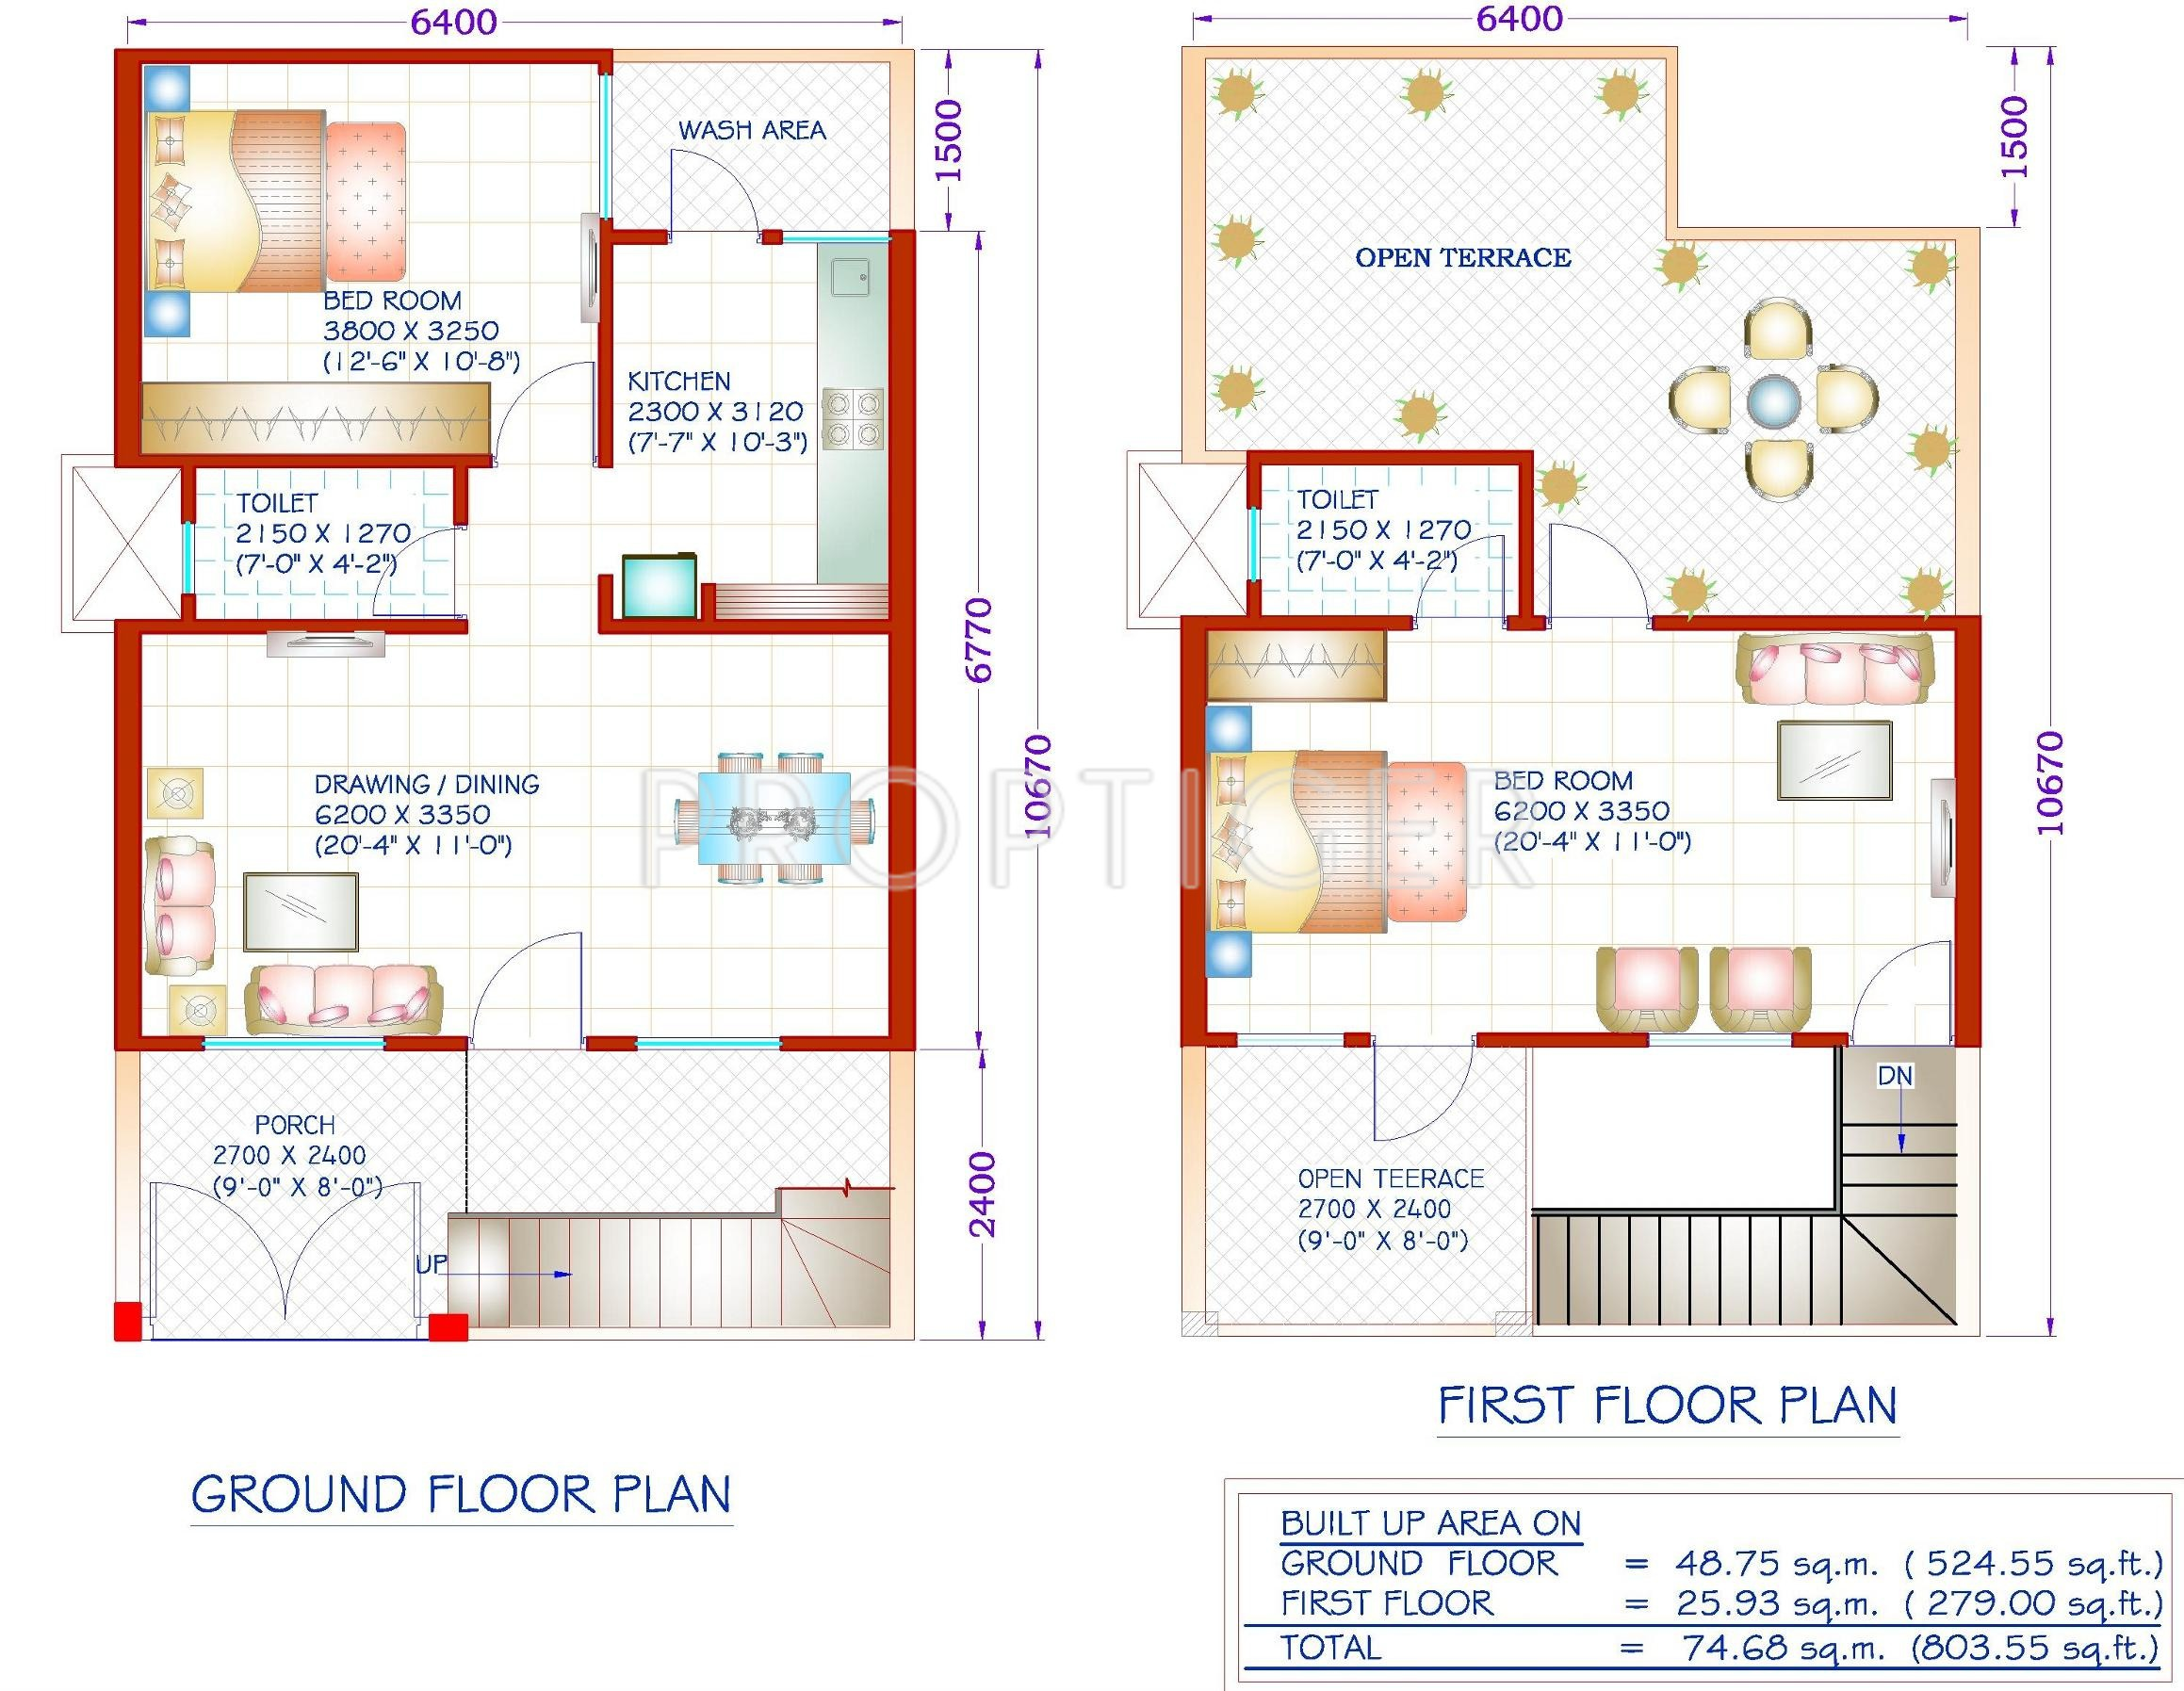 600 sq ft house plans indian style with car parking for House plans indian style in 1200 sq ft